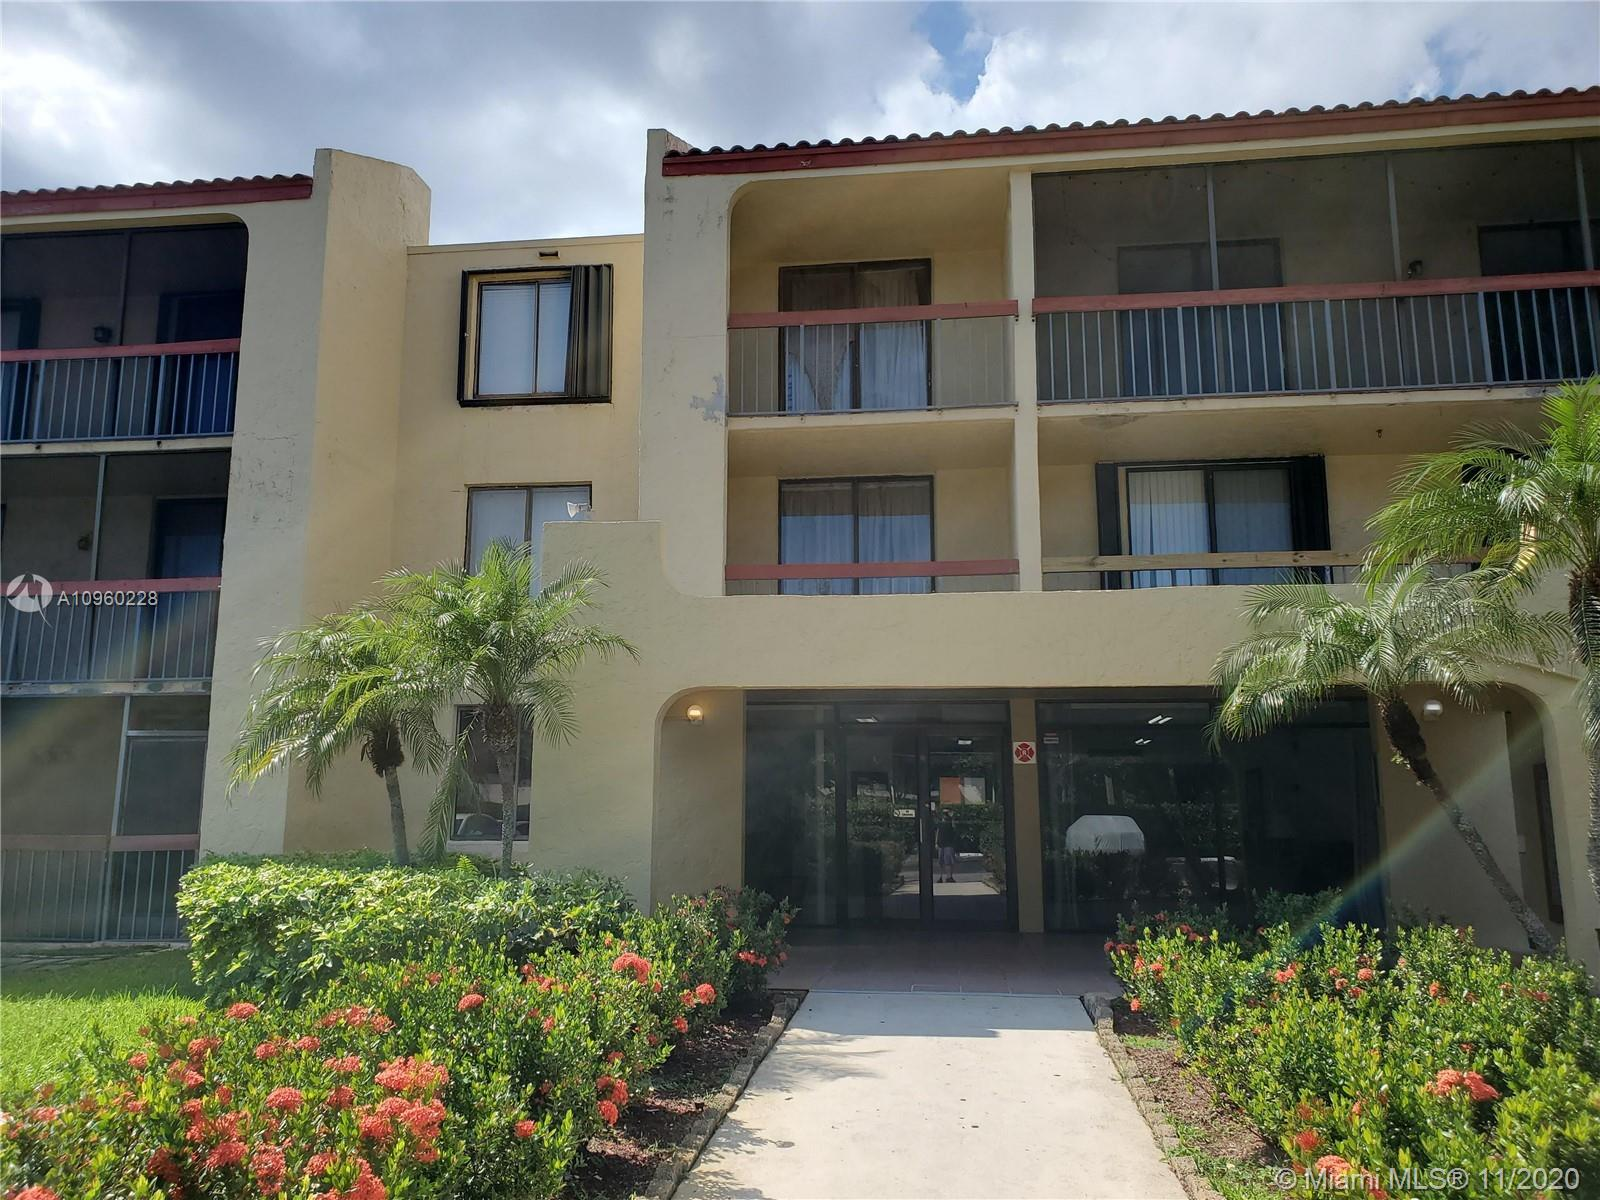 Don't miss out on this Deerfield Beach beauty. This 1st floor condo has two spacious bedrooms and 2 full baths with tile throughout the entire unit. Brand new updated kitchen with all new appliances, custom white cabinetry in addition to the gorgeous dark granite counter tops. Washer and Dryer conveniently included. Separate outdoor storage room located in the large screened porch. Pool on site and water is included with the condo association fee. Make this home yours or as a lucrative investment. Go and Show, motivated seller.